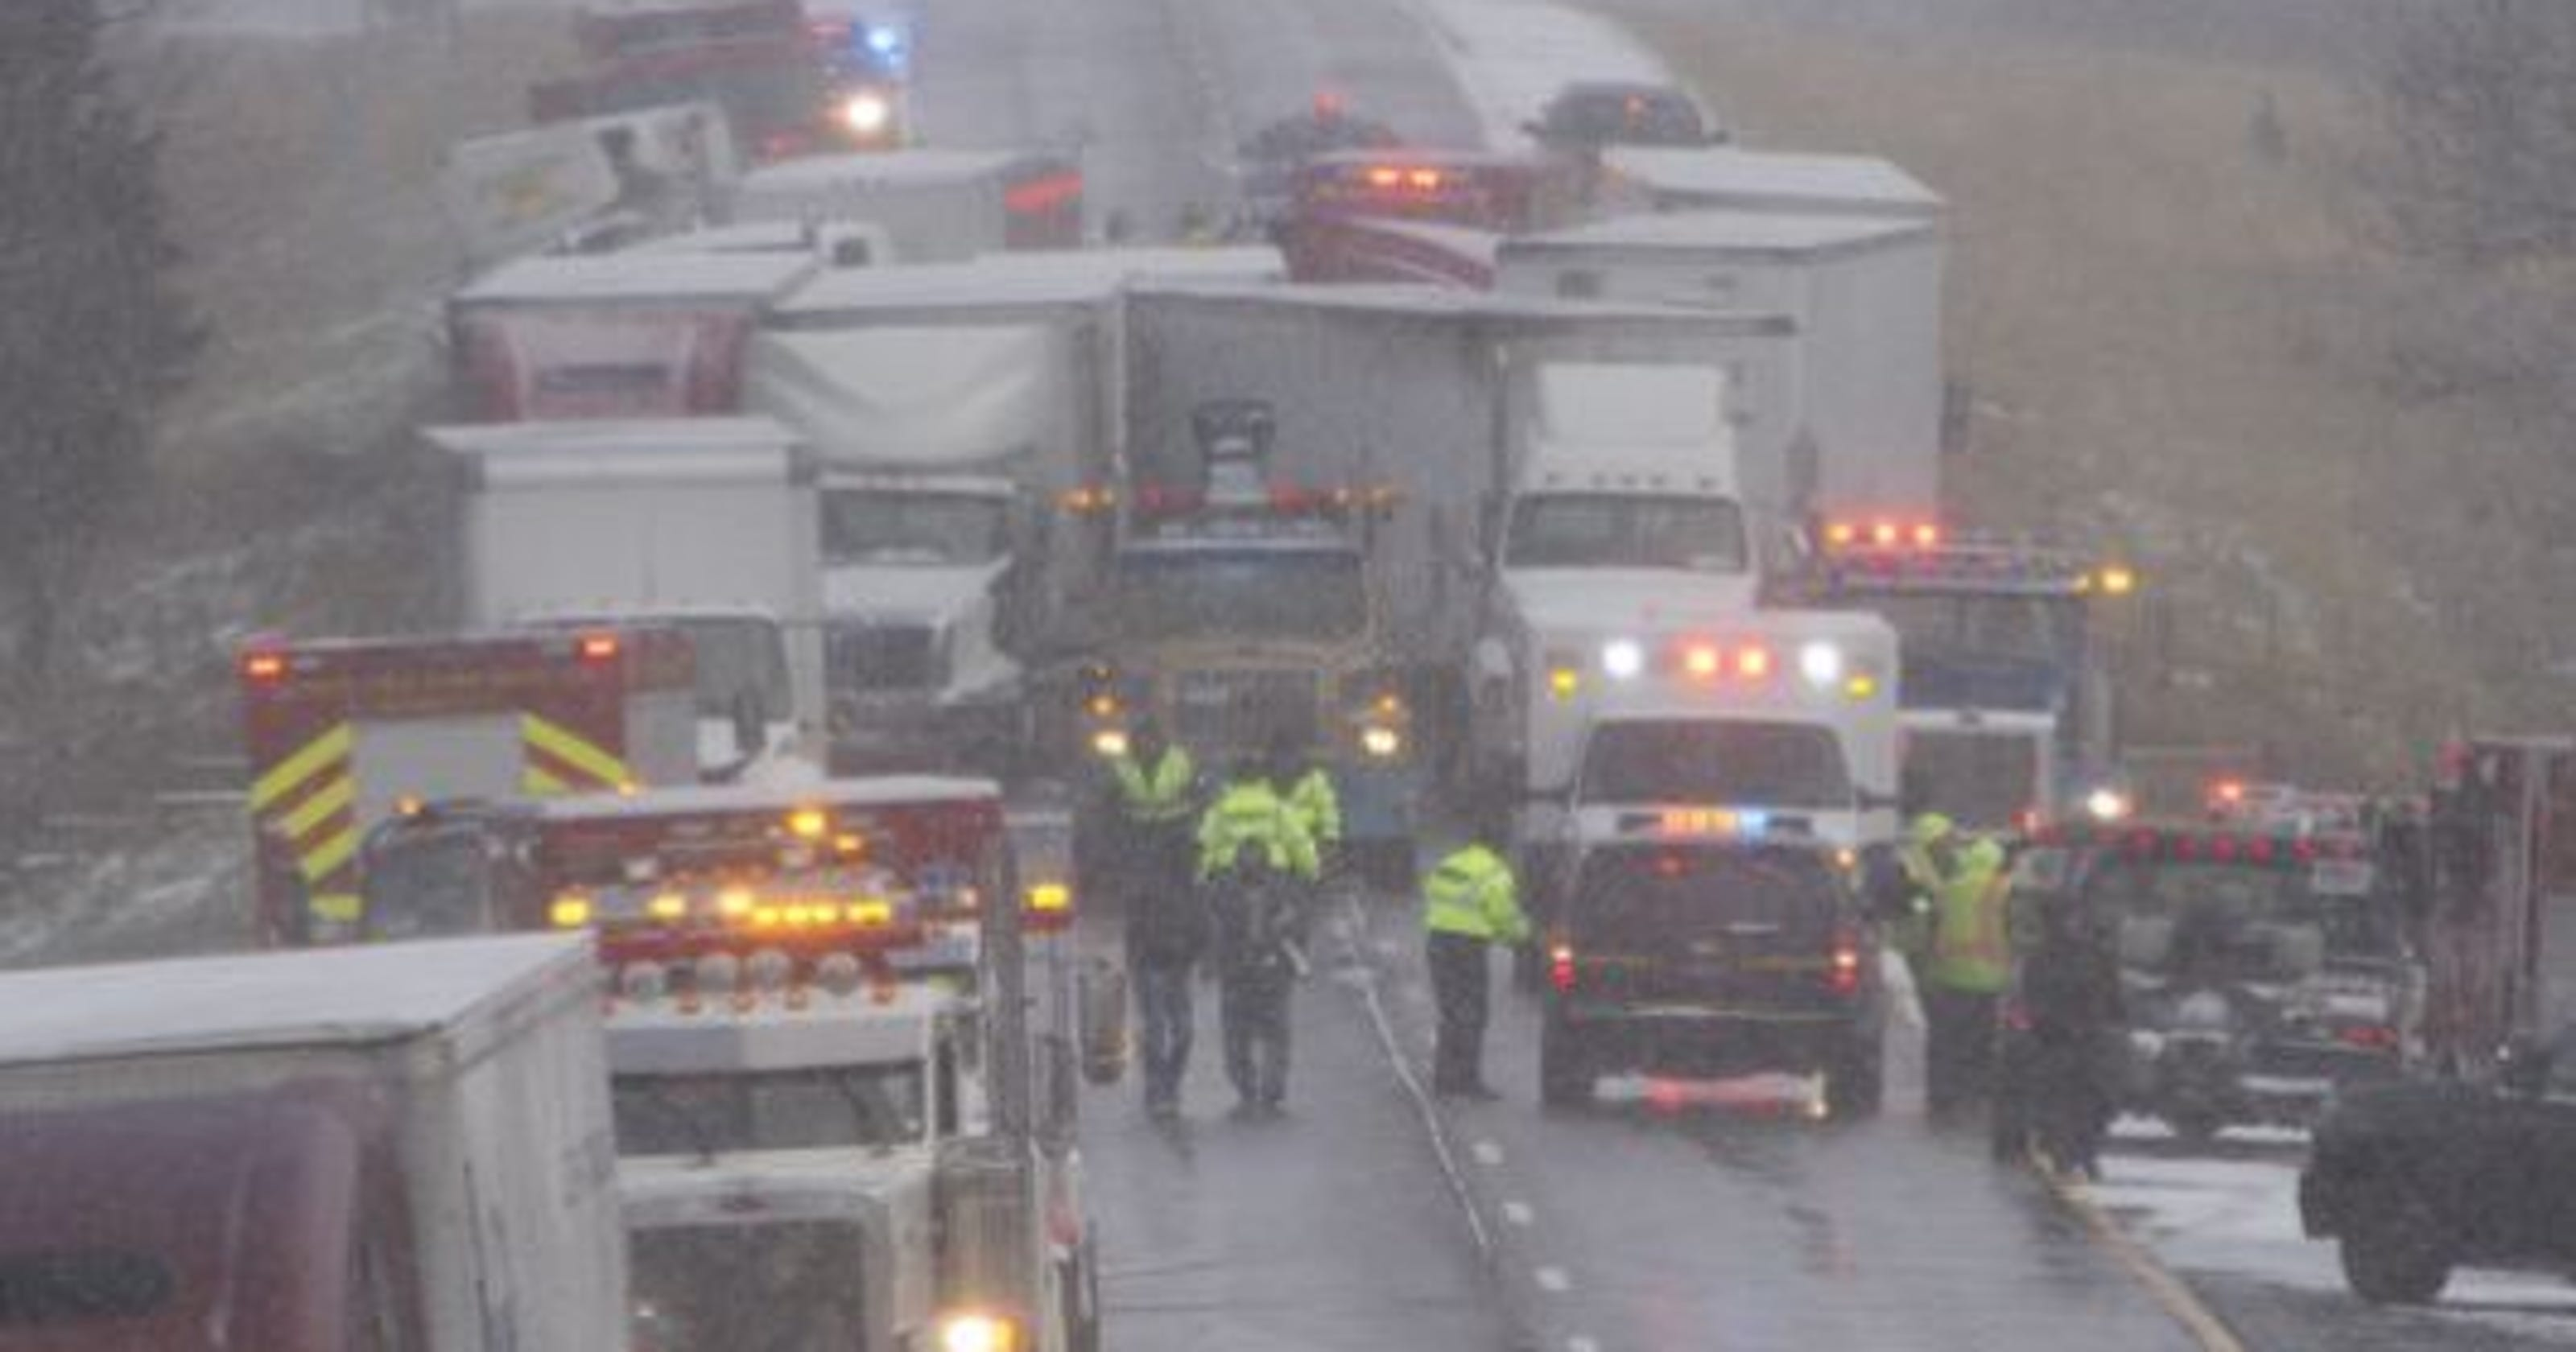 Police: Speedster cause of 53-vehicle fatal I-96 pileup